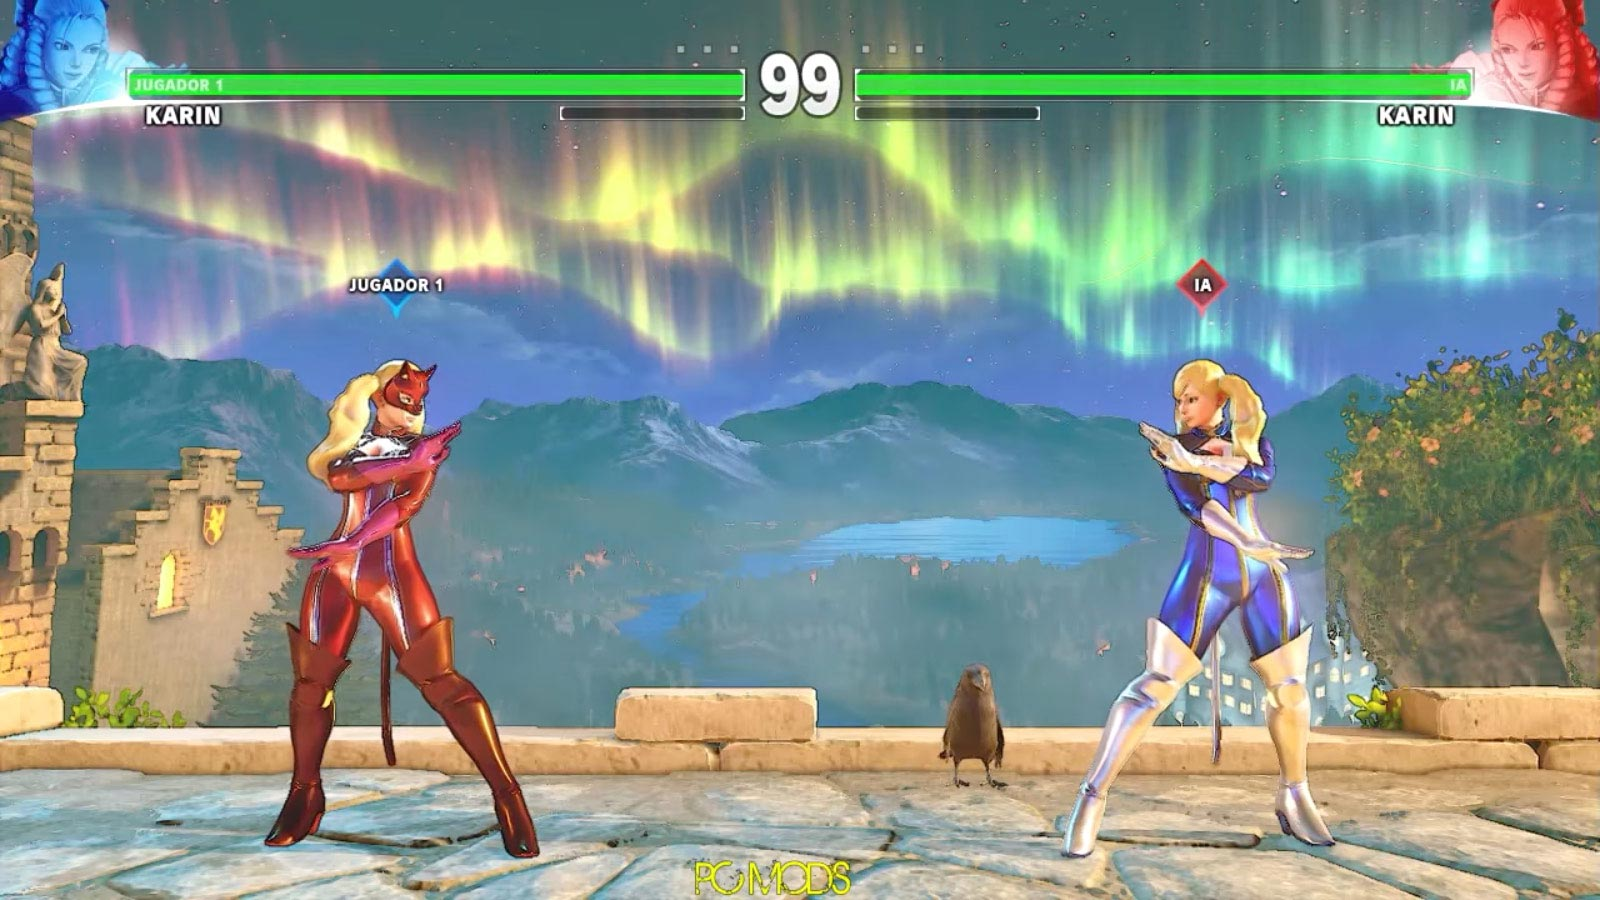 PC Best Mods: Alice, Emma Frost, and Ann Takamaki 9 out of 9 image gallery